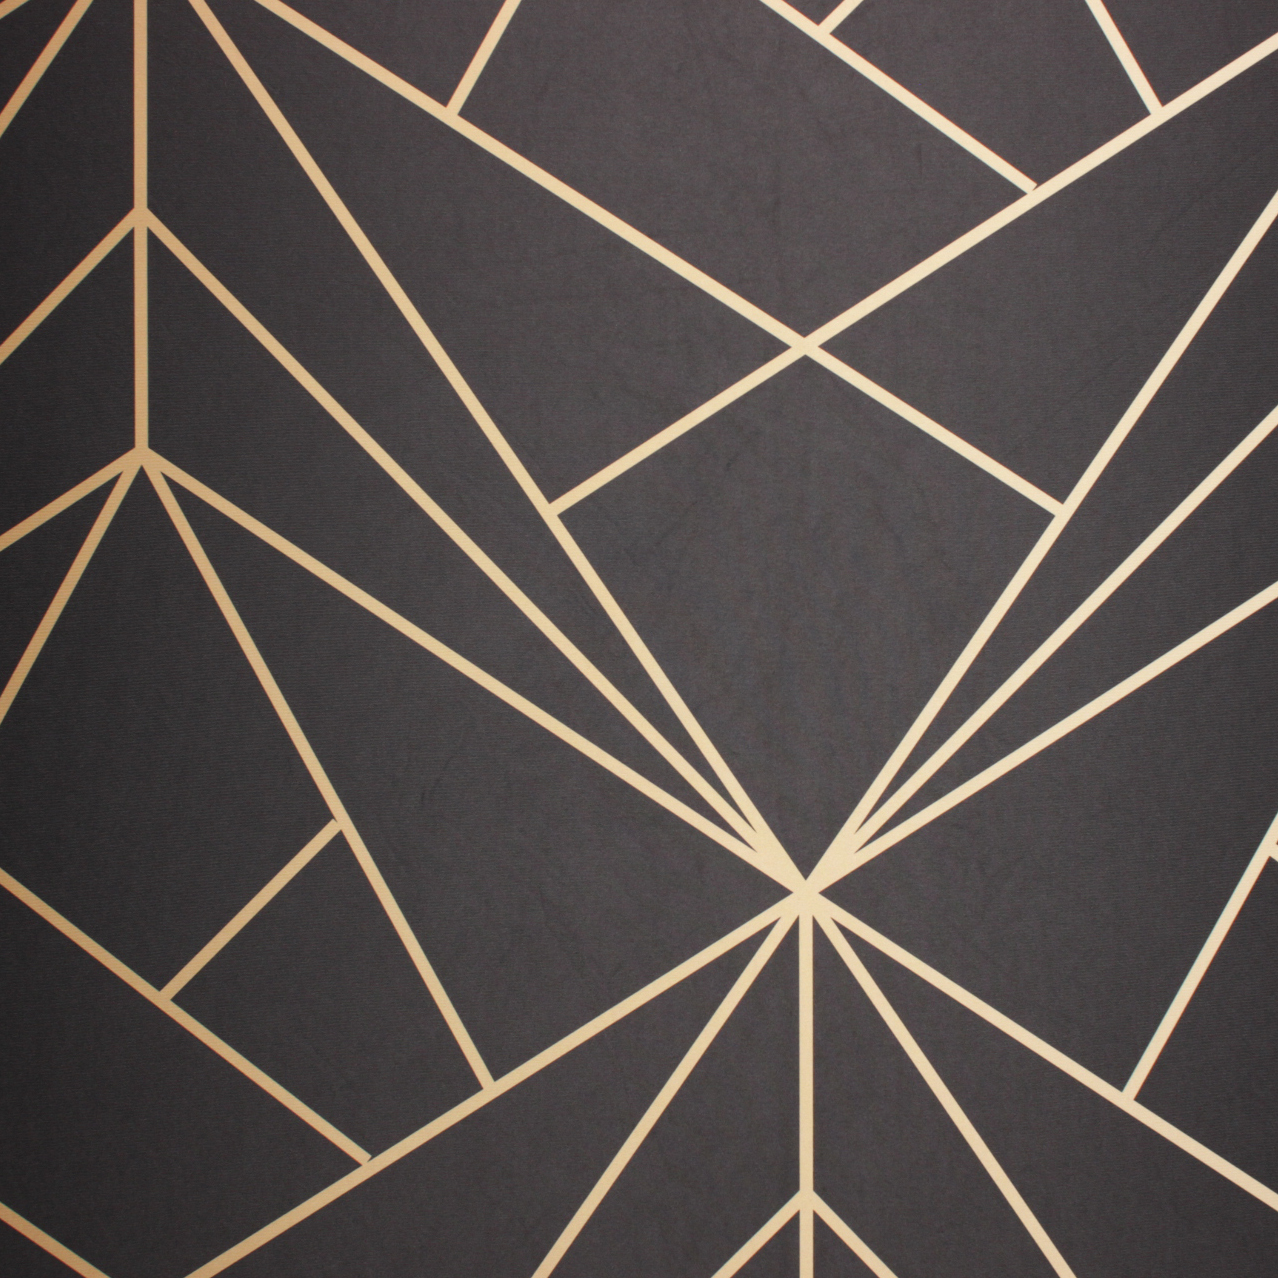 Black Geometric - This bold and modern backdrop turns heads. Its a showstopper for sure!